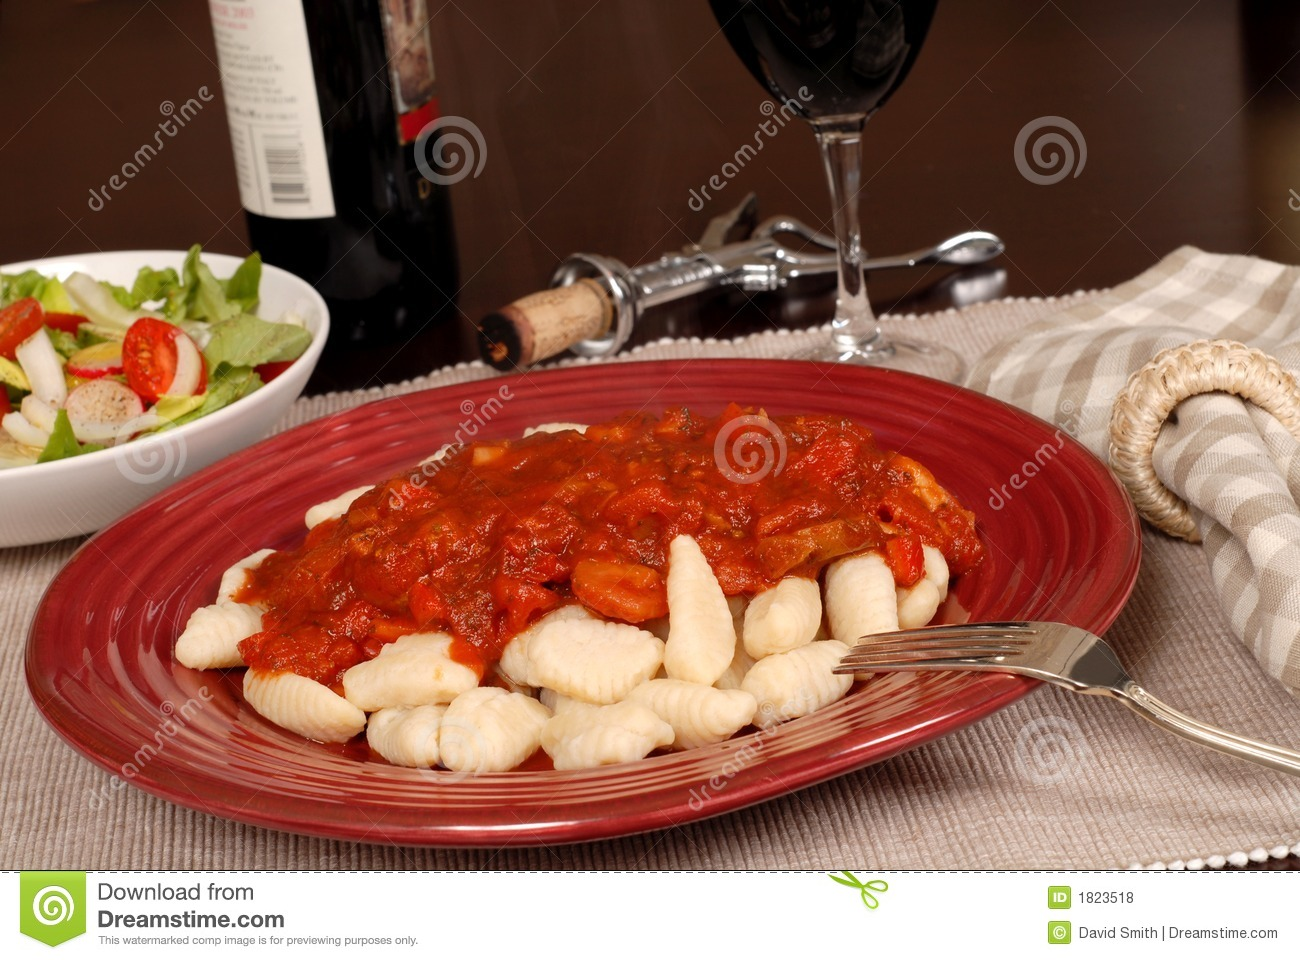 ... Stock Photos: Potato gnocchi with marinara sauce with a salad and wine